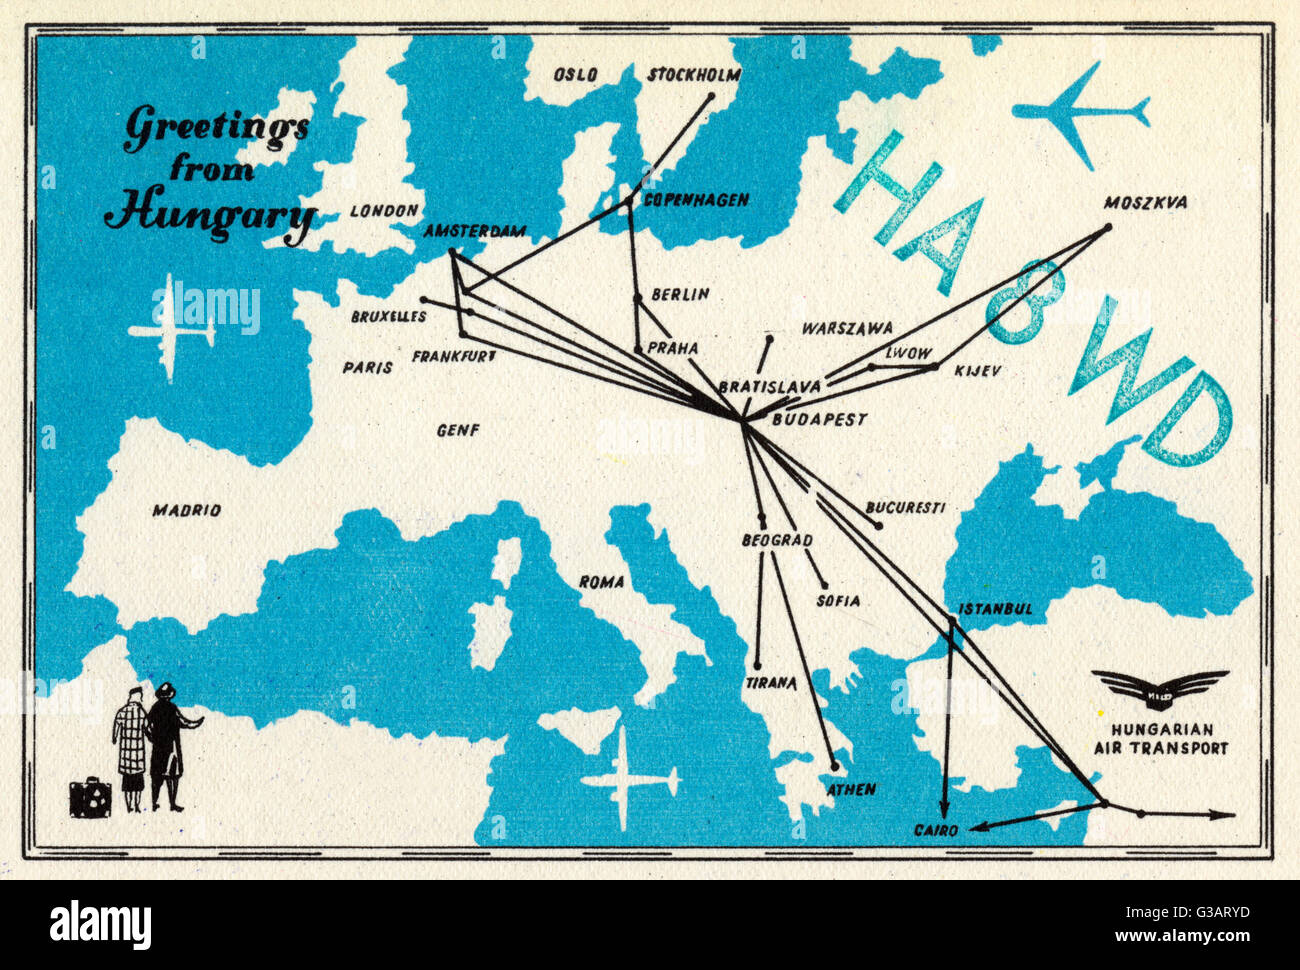 Postcard with map of europe and airline routes to and from budapest postcard with map of europe and airline routes to and from budapest greetings from hungary hungarian air transport date circa 1960s m4hsunfo